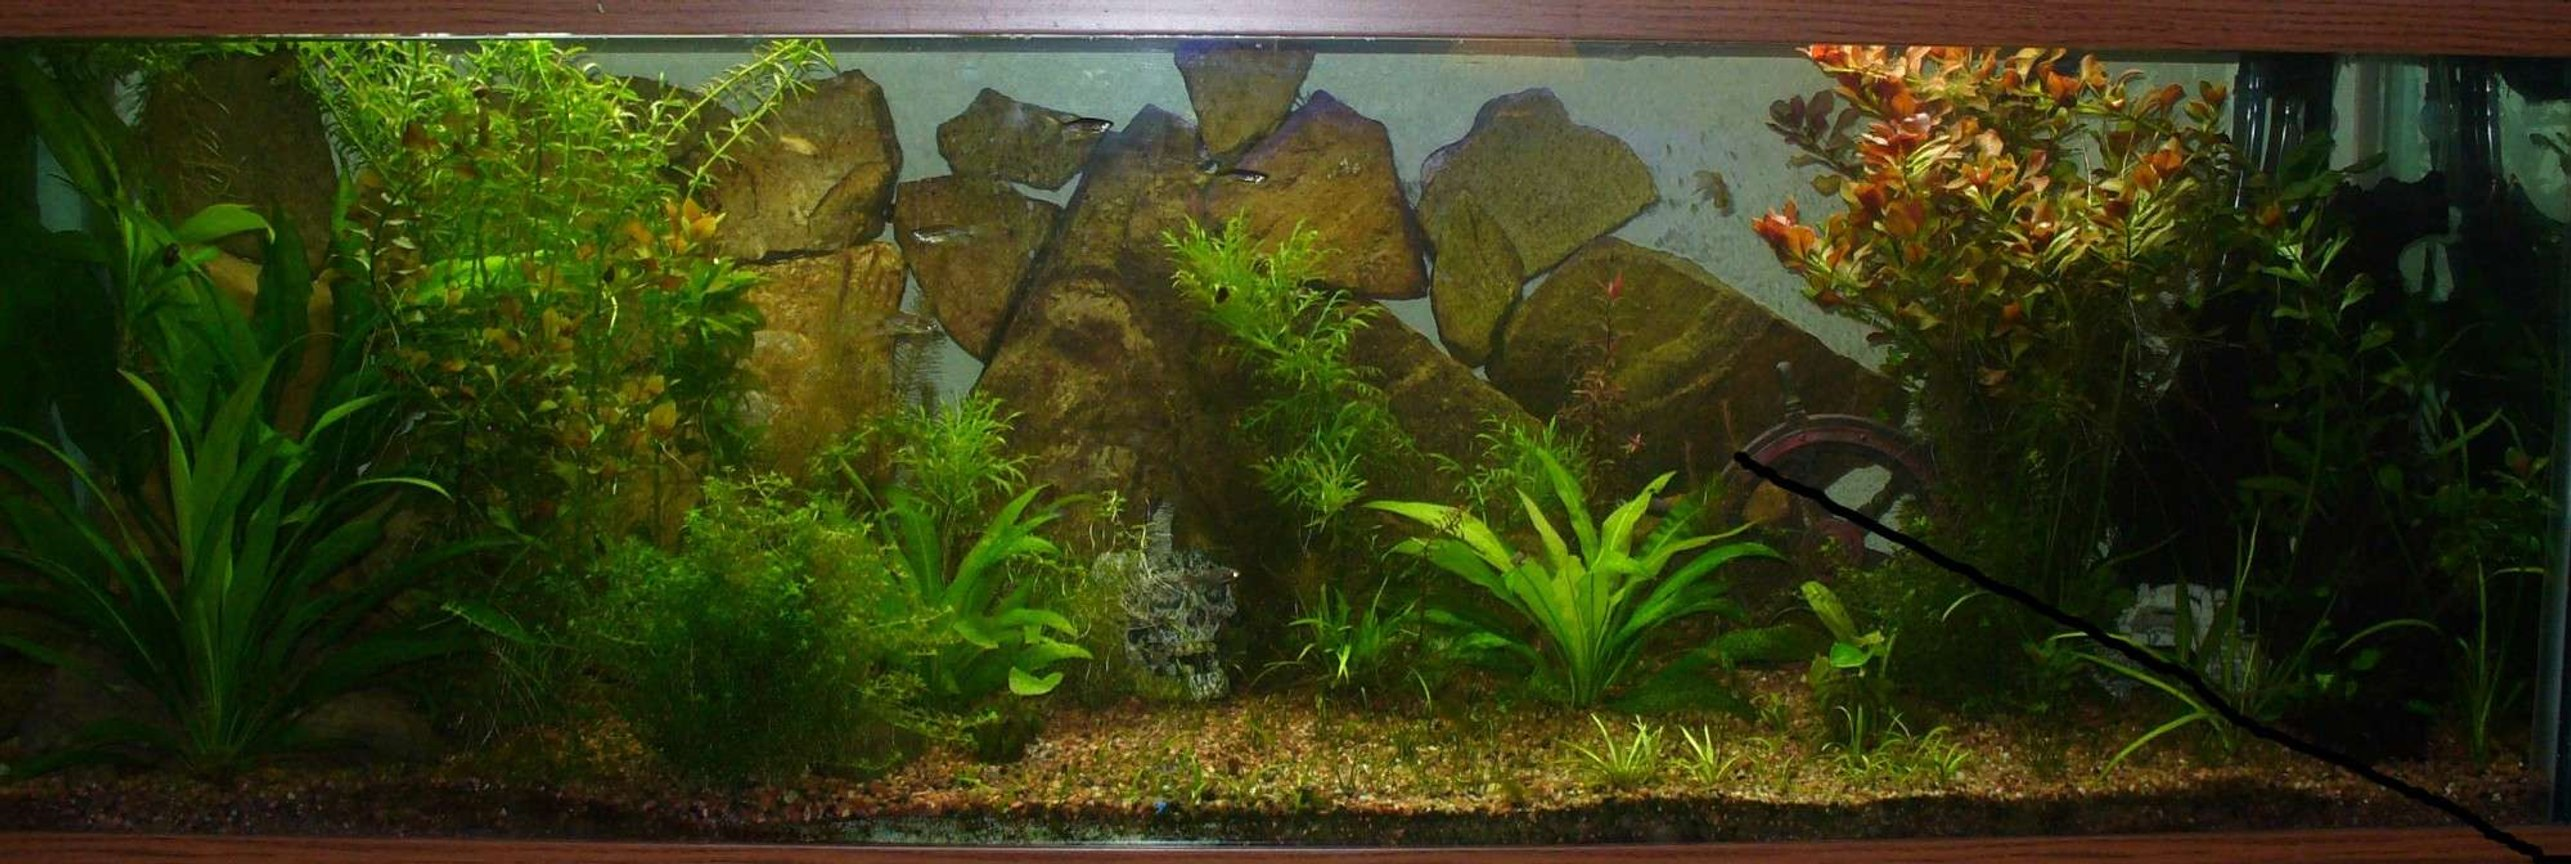 29 gallons planted tank (mostly live plants and fish) - 100 gal, 165 watts t-5 HO light (2) 10,000k, (1) 7,500K, Filter: Magnum 350 canaster filter, hand stacked rock wall Fish: 2SAE, 10 lepord danios, 3 dwarf puffers, 5 kuli loaches, 5 ottos Plants: 2 amazon swords, chain swords, dwarf sag, eldoa, red ludwiga